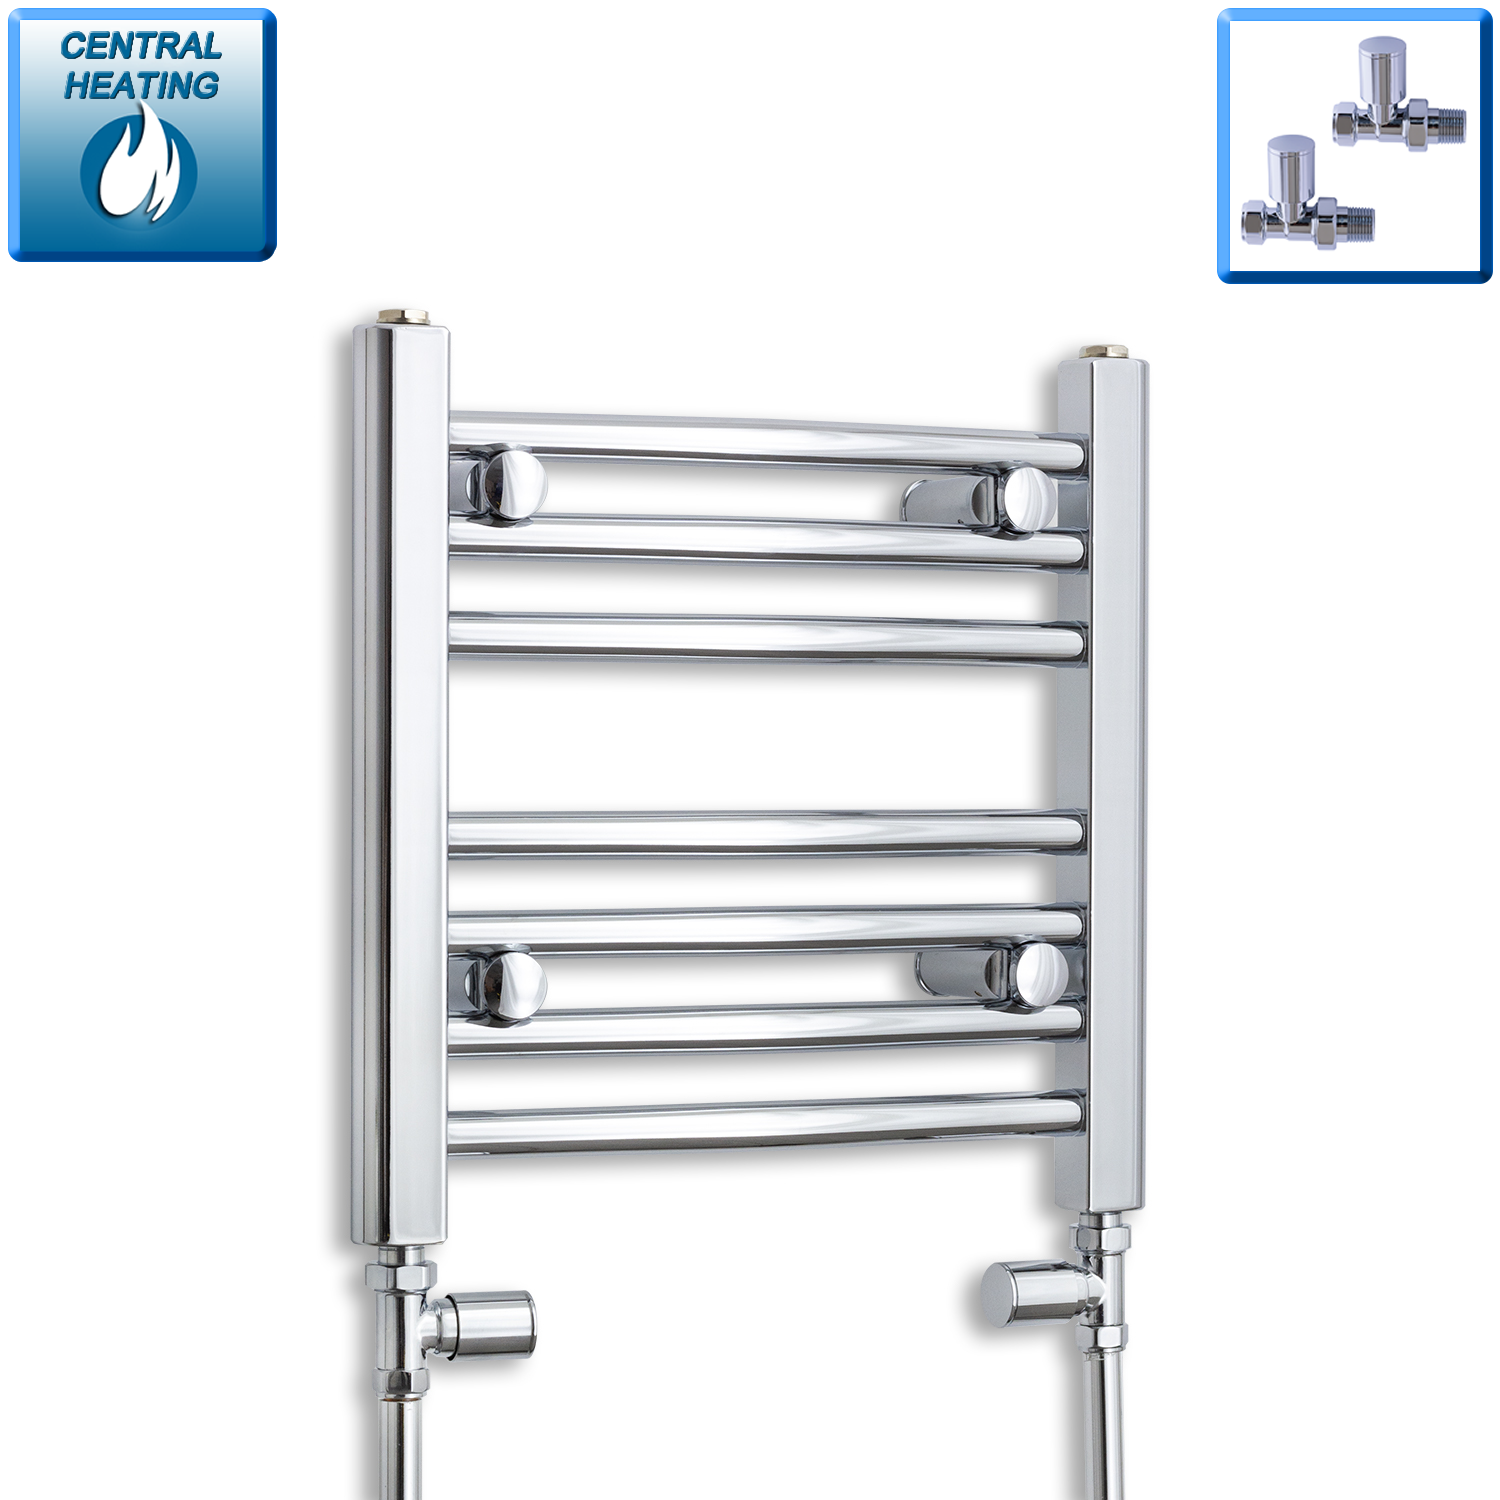 500mm Wide 400mm High Flat Chrome Heated Towel Rail Radiator HTR,With Straight Valve